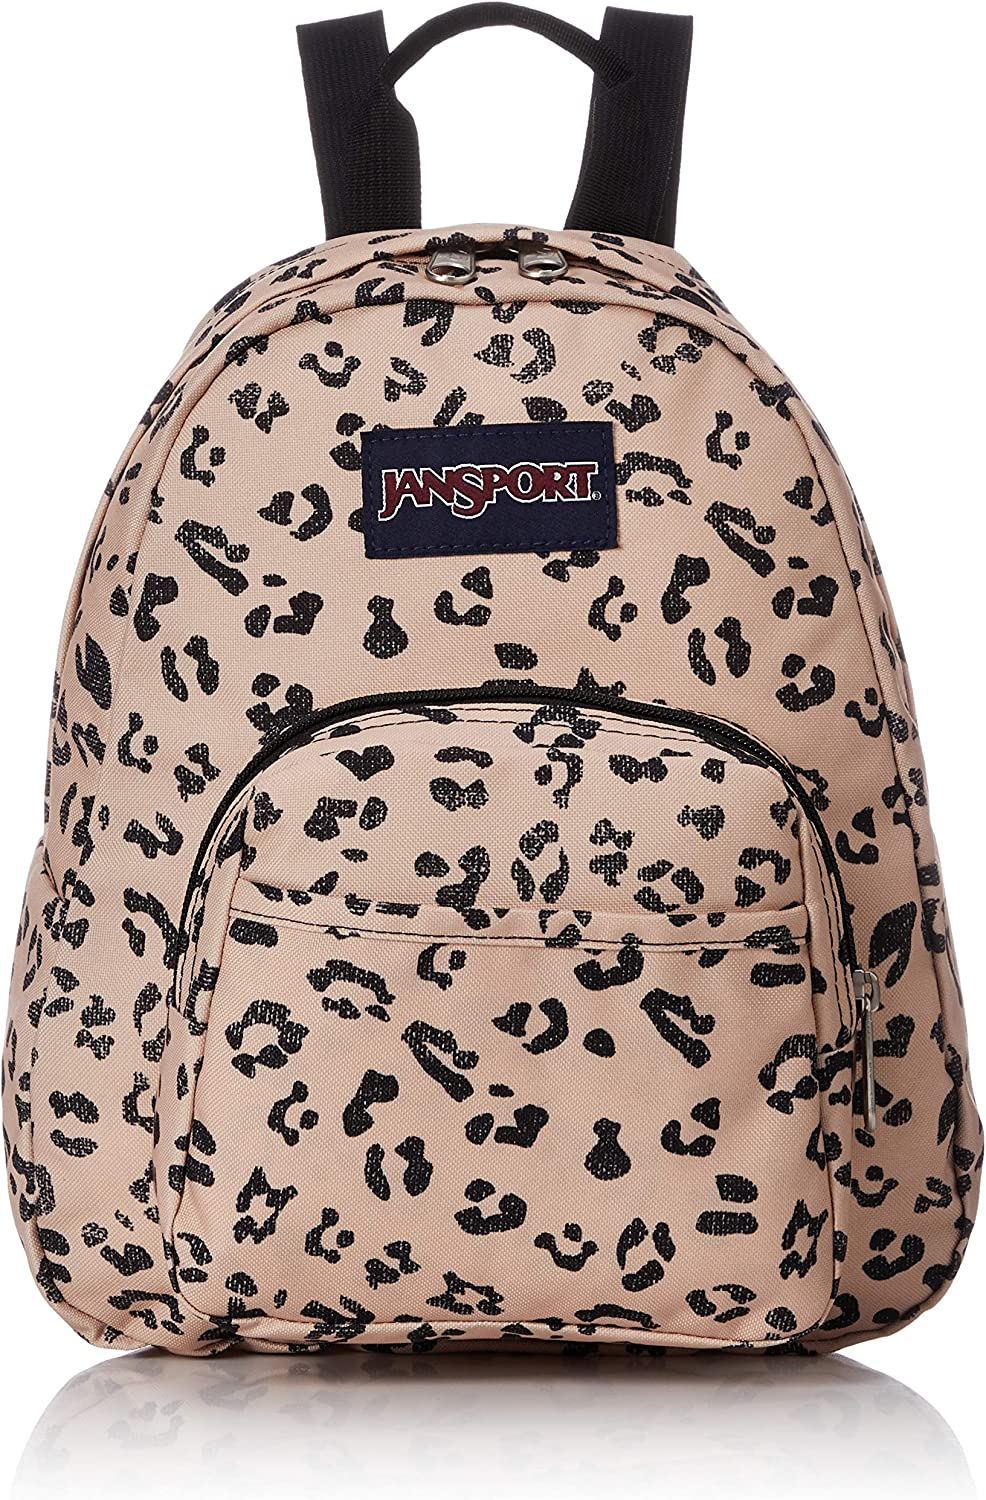 JANSPORT Half Pint Show Your Spots Mini Backpack, Multi-colored, One Size